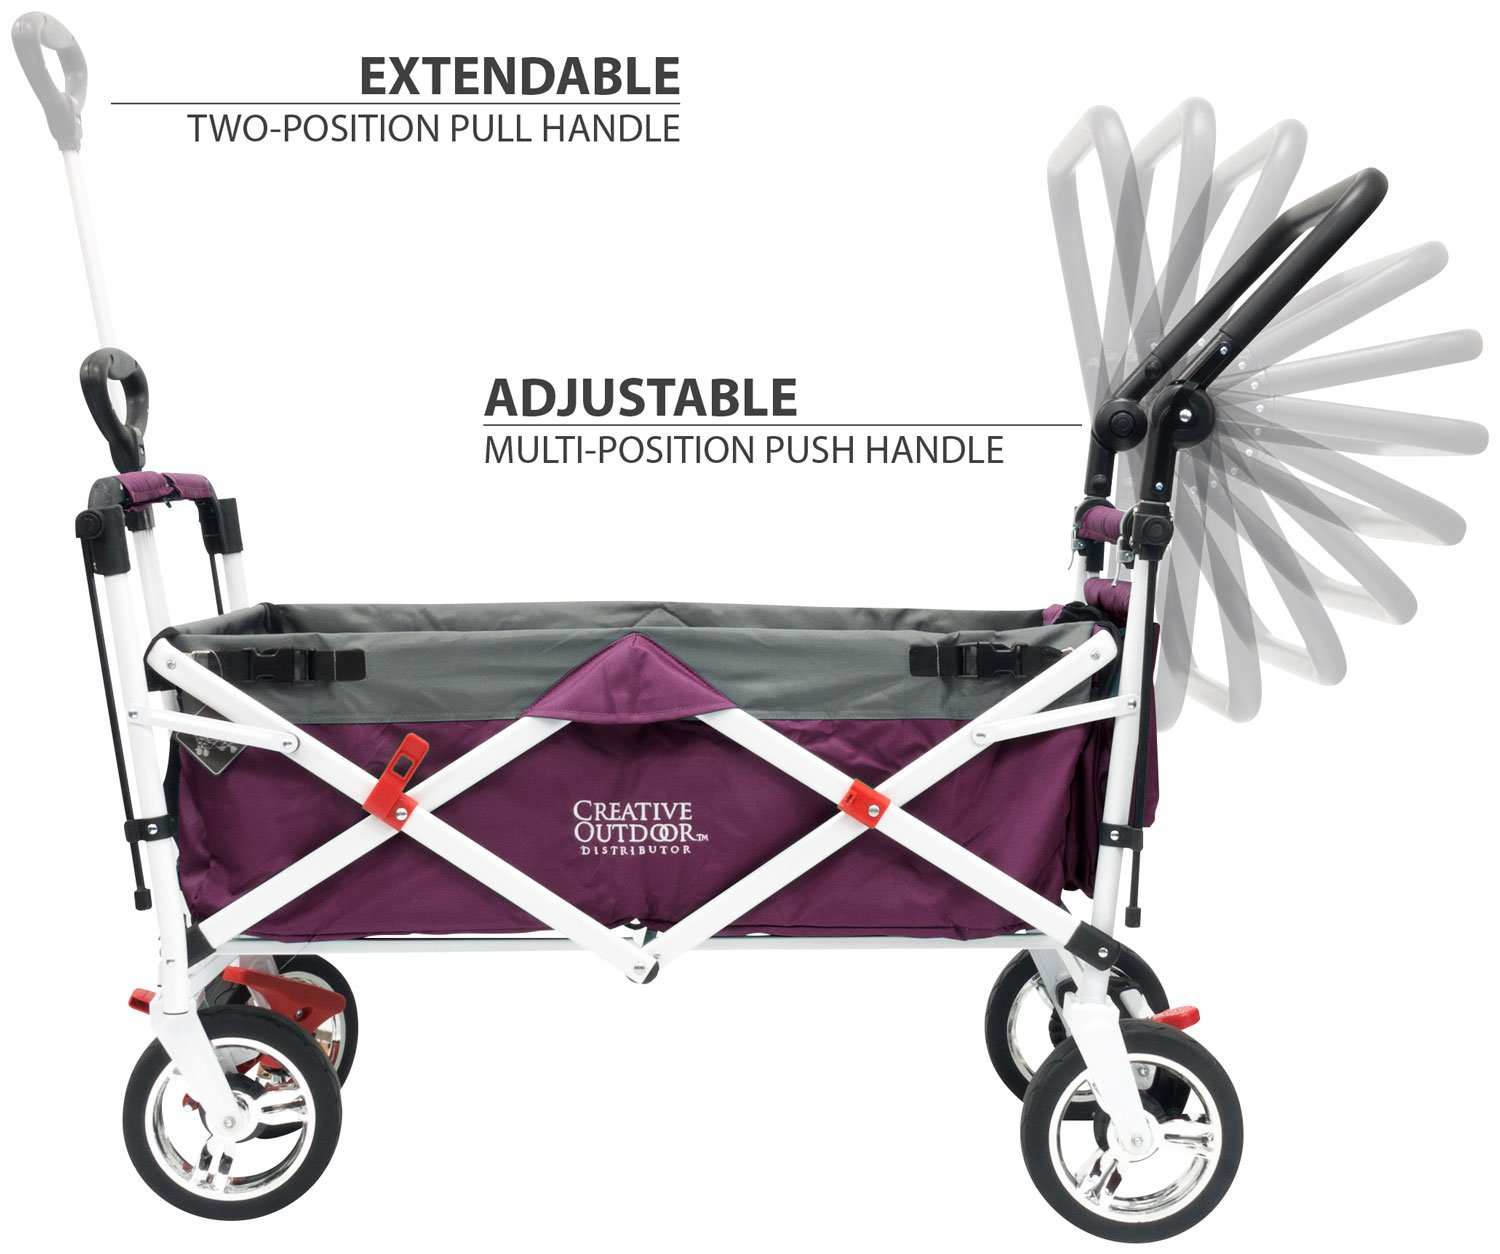 Creative Outdoor Push Pull Collapsible Folding Wagon Stroller